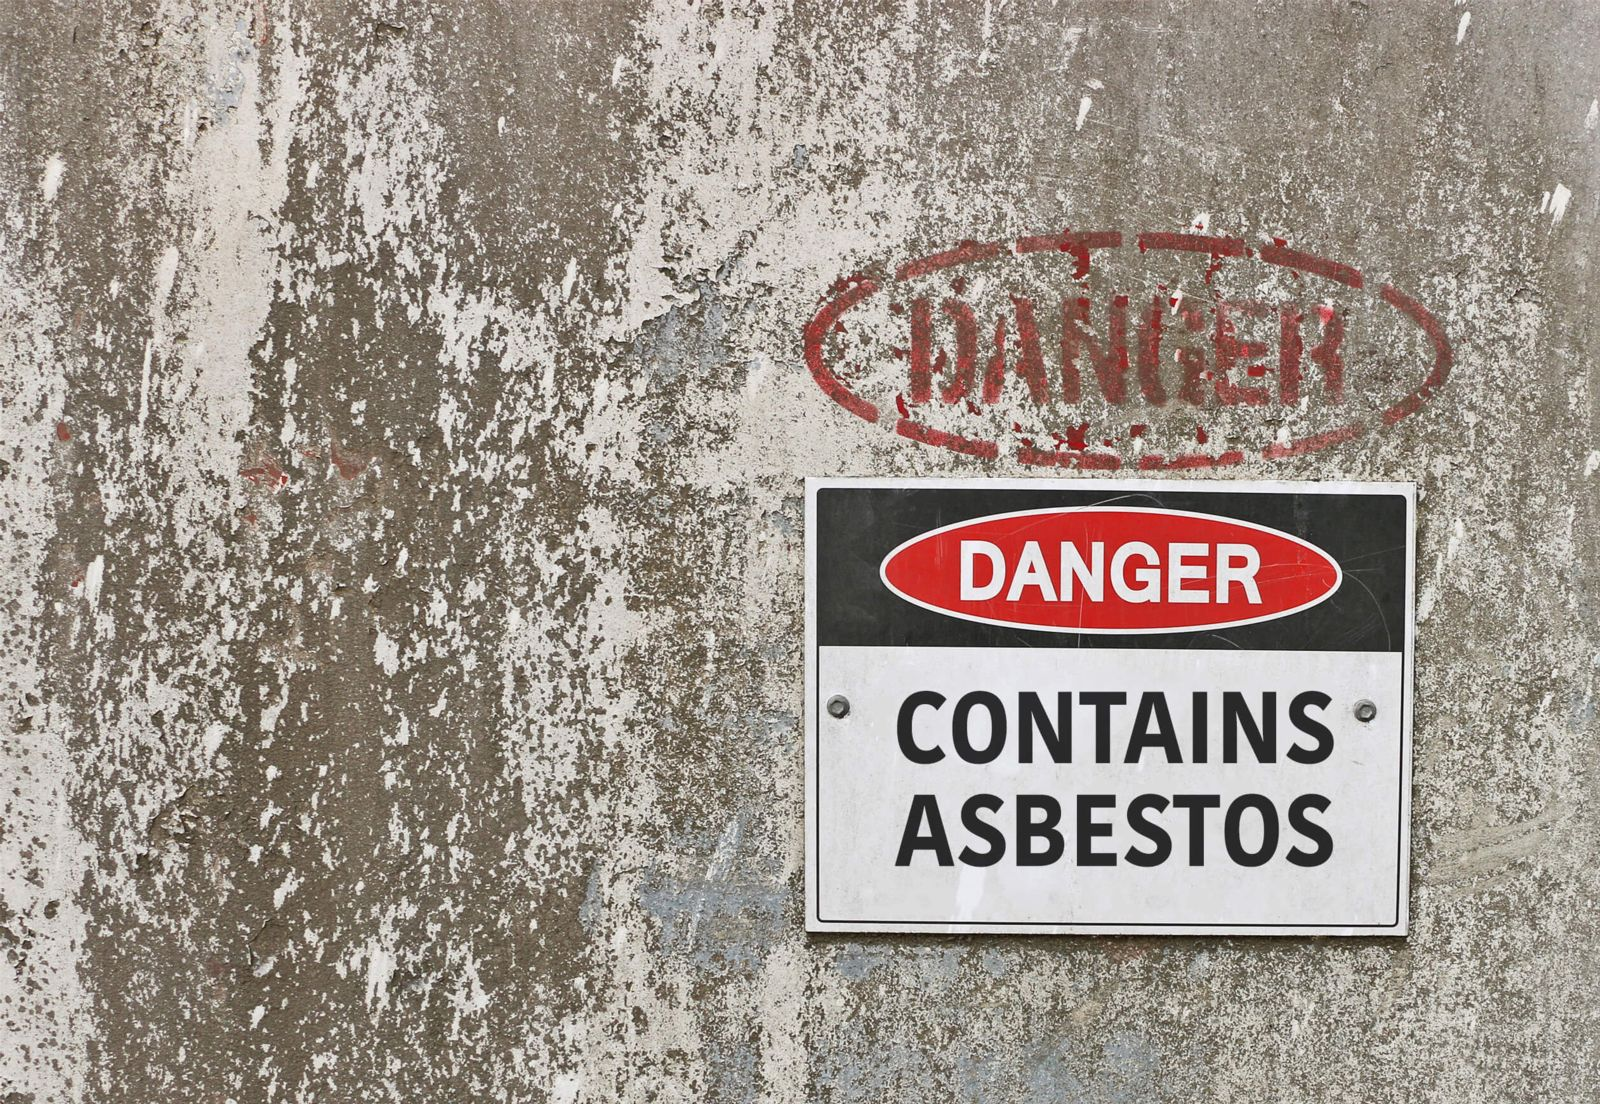 Warning for area containing cancer-causing substance asbestos